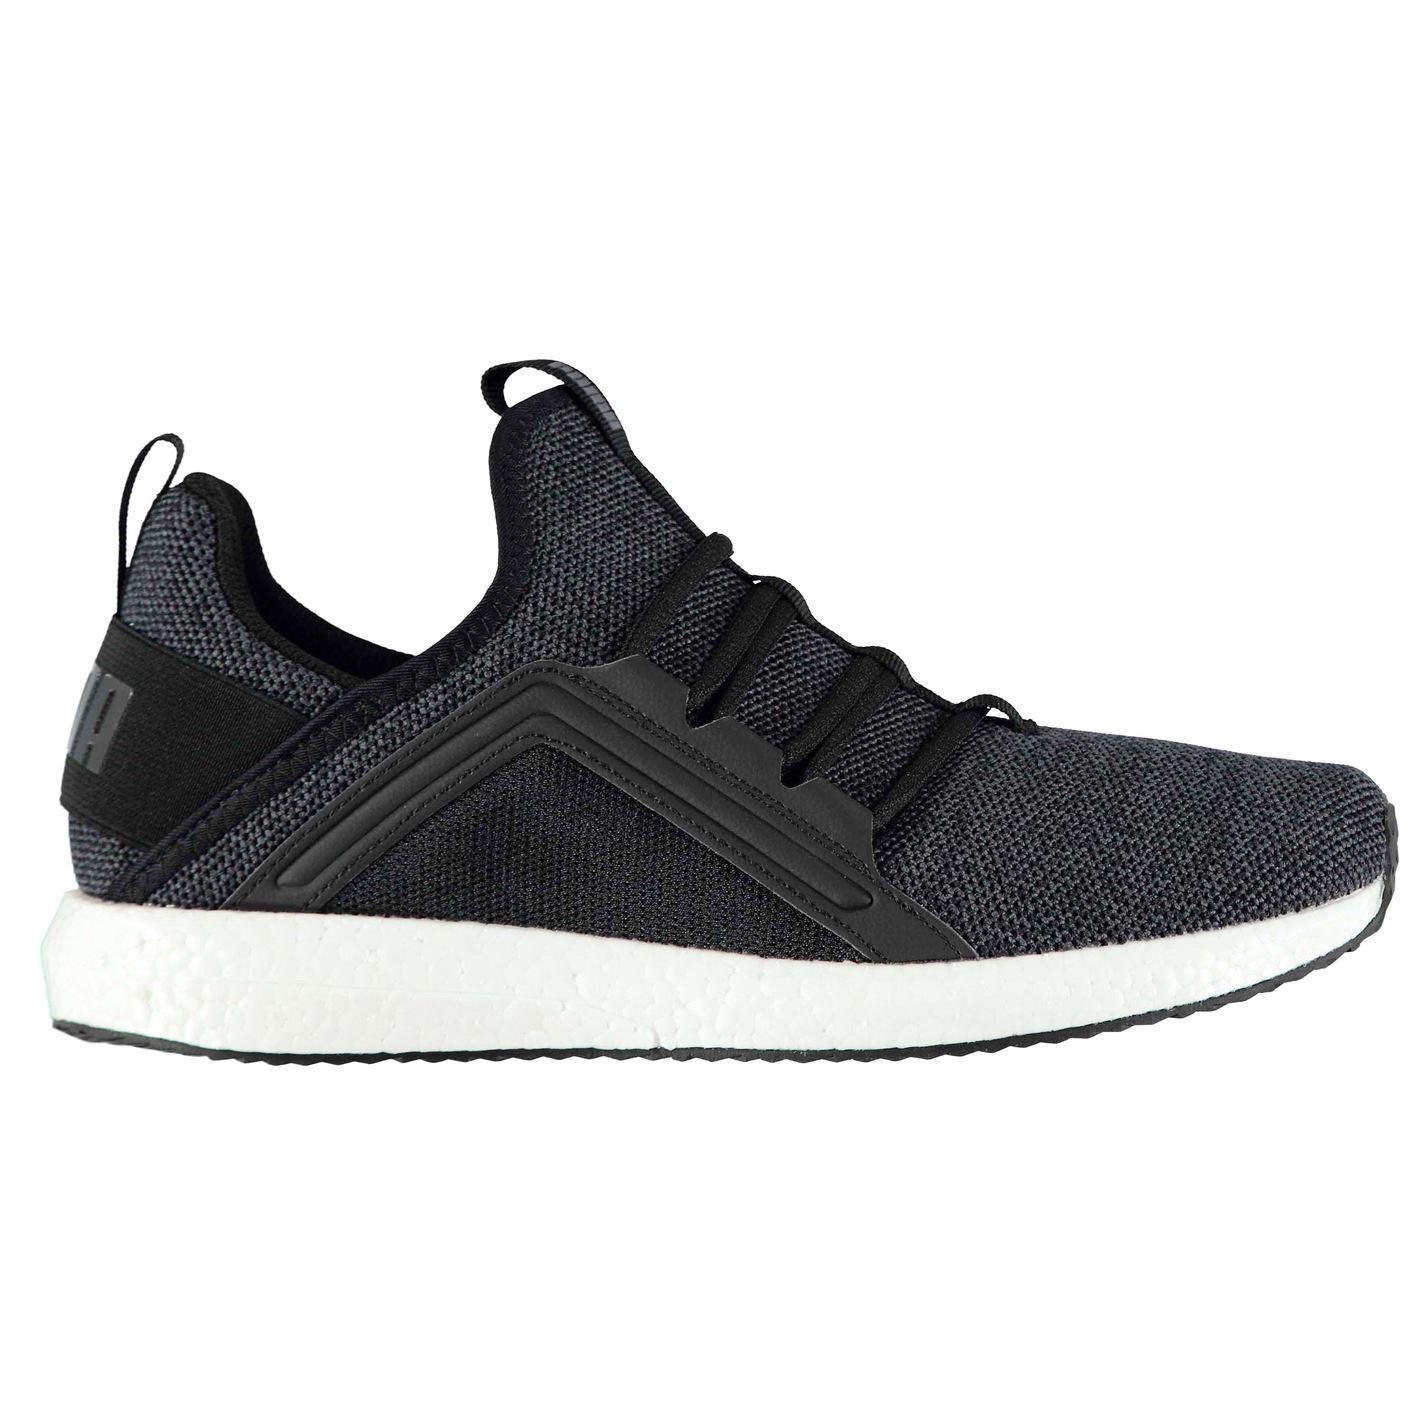 Puma Mega Uomo NRGY Sneakers  Uomo Mega Gents Runners Schuhes Laces Fastened Ventilated 7b74b2